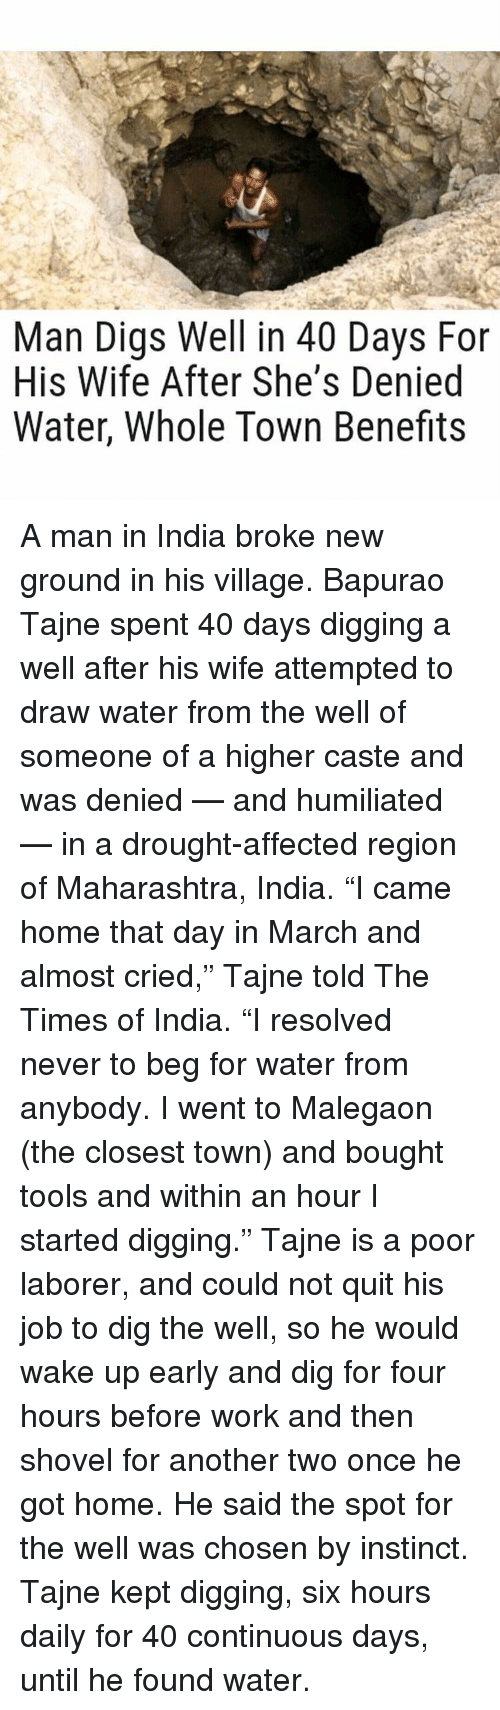 """Memes, Affect, and Drawings: Man Digs Well in 40 Days For  His Wife After She's Denied  Water, Whole Town Benefits A man in India broke new ground in his village. Bapurao Tajne spent 40 days digging a well after his wife attempted to draw water from the well of someone of a higher caste and was denied — and humiliated — in a drought-affected region of Maharashtra, India. """"I came home that day in March and almost cried,"""" Tajne told The Times of India. """"I resolved never to beg for water from anybody. I went to Malegaon (the closest town) and bought tools and within an hour I started digging."""" Tajne is a poor laborer, and could not quit his job to dig the well, so he would wake up early and dig for four hours before work and then shovel for another two once he got home. He said the spot for the well was chosen by instinct. Tajne kept digging, six hours daily for 40 continuous days, until he found water."""